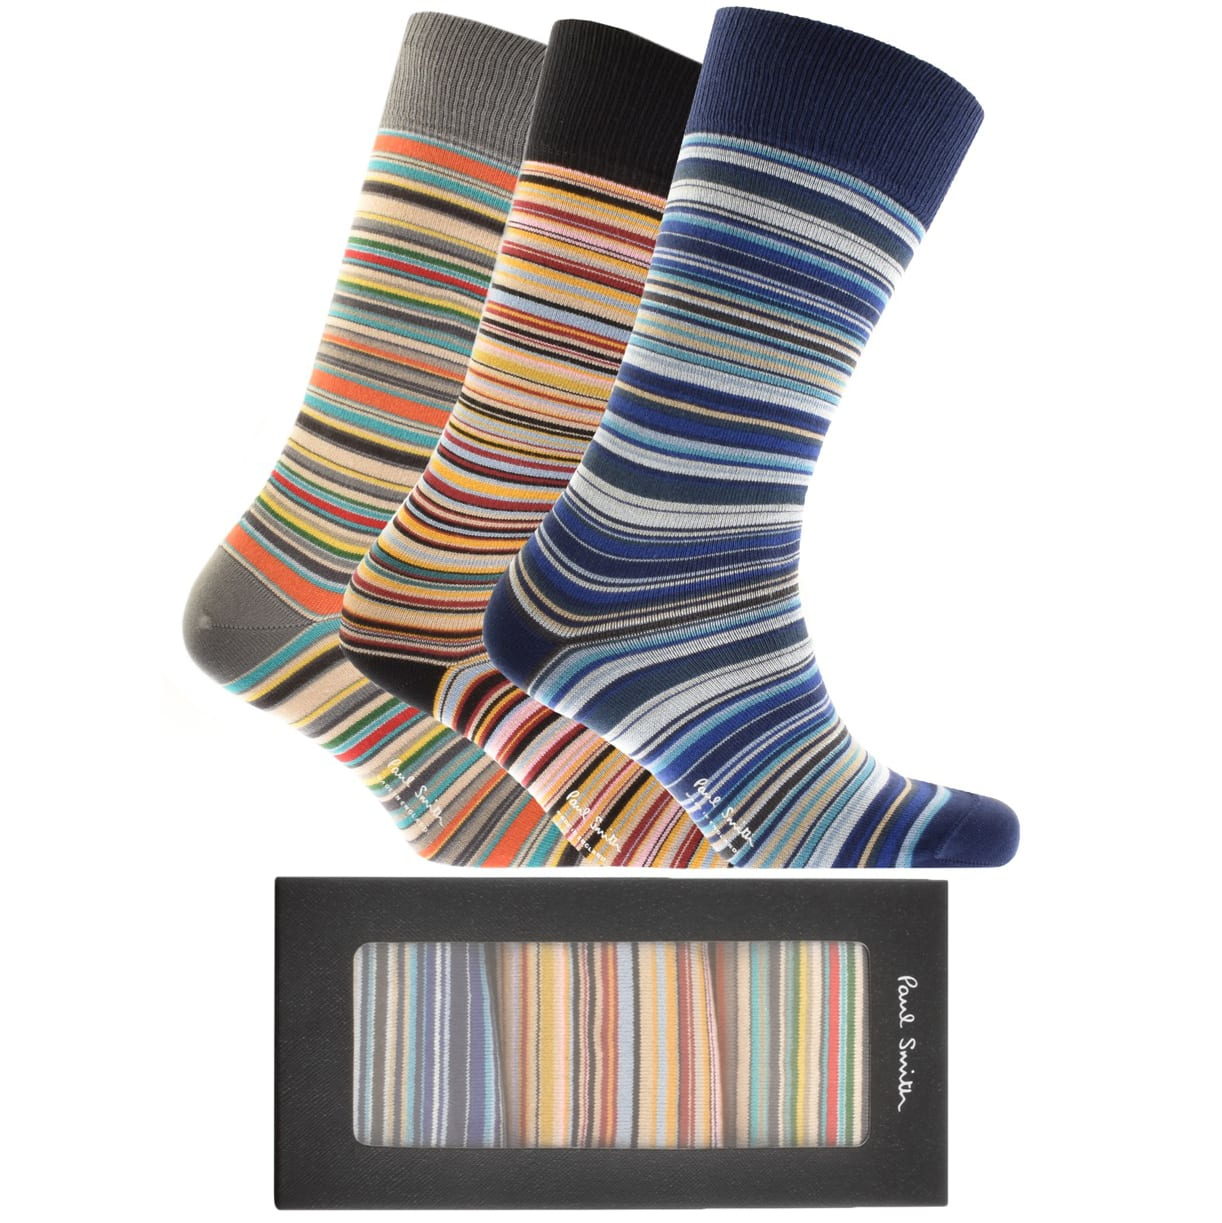 Paul Smith Gift Set 3 Pack Stripe Socks in different shades of blue, orange, red, white, grey and black